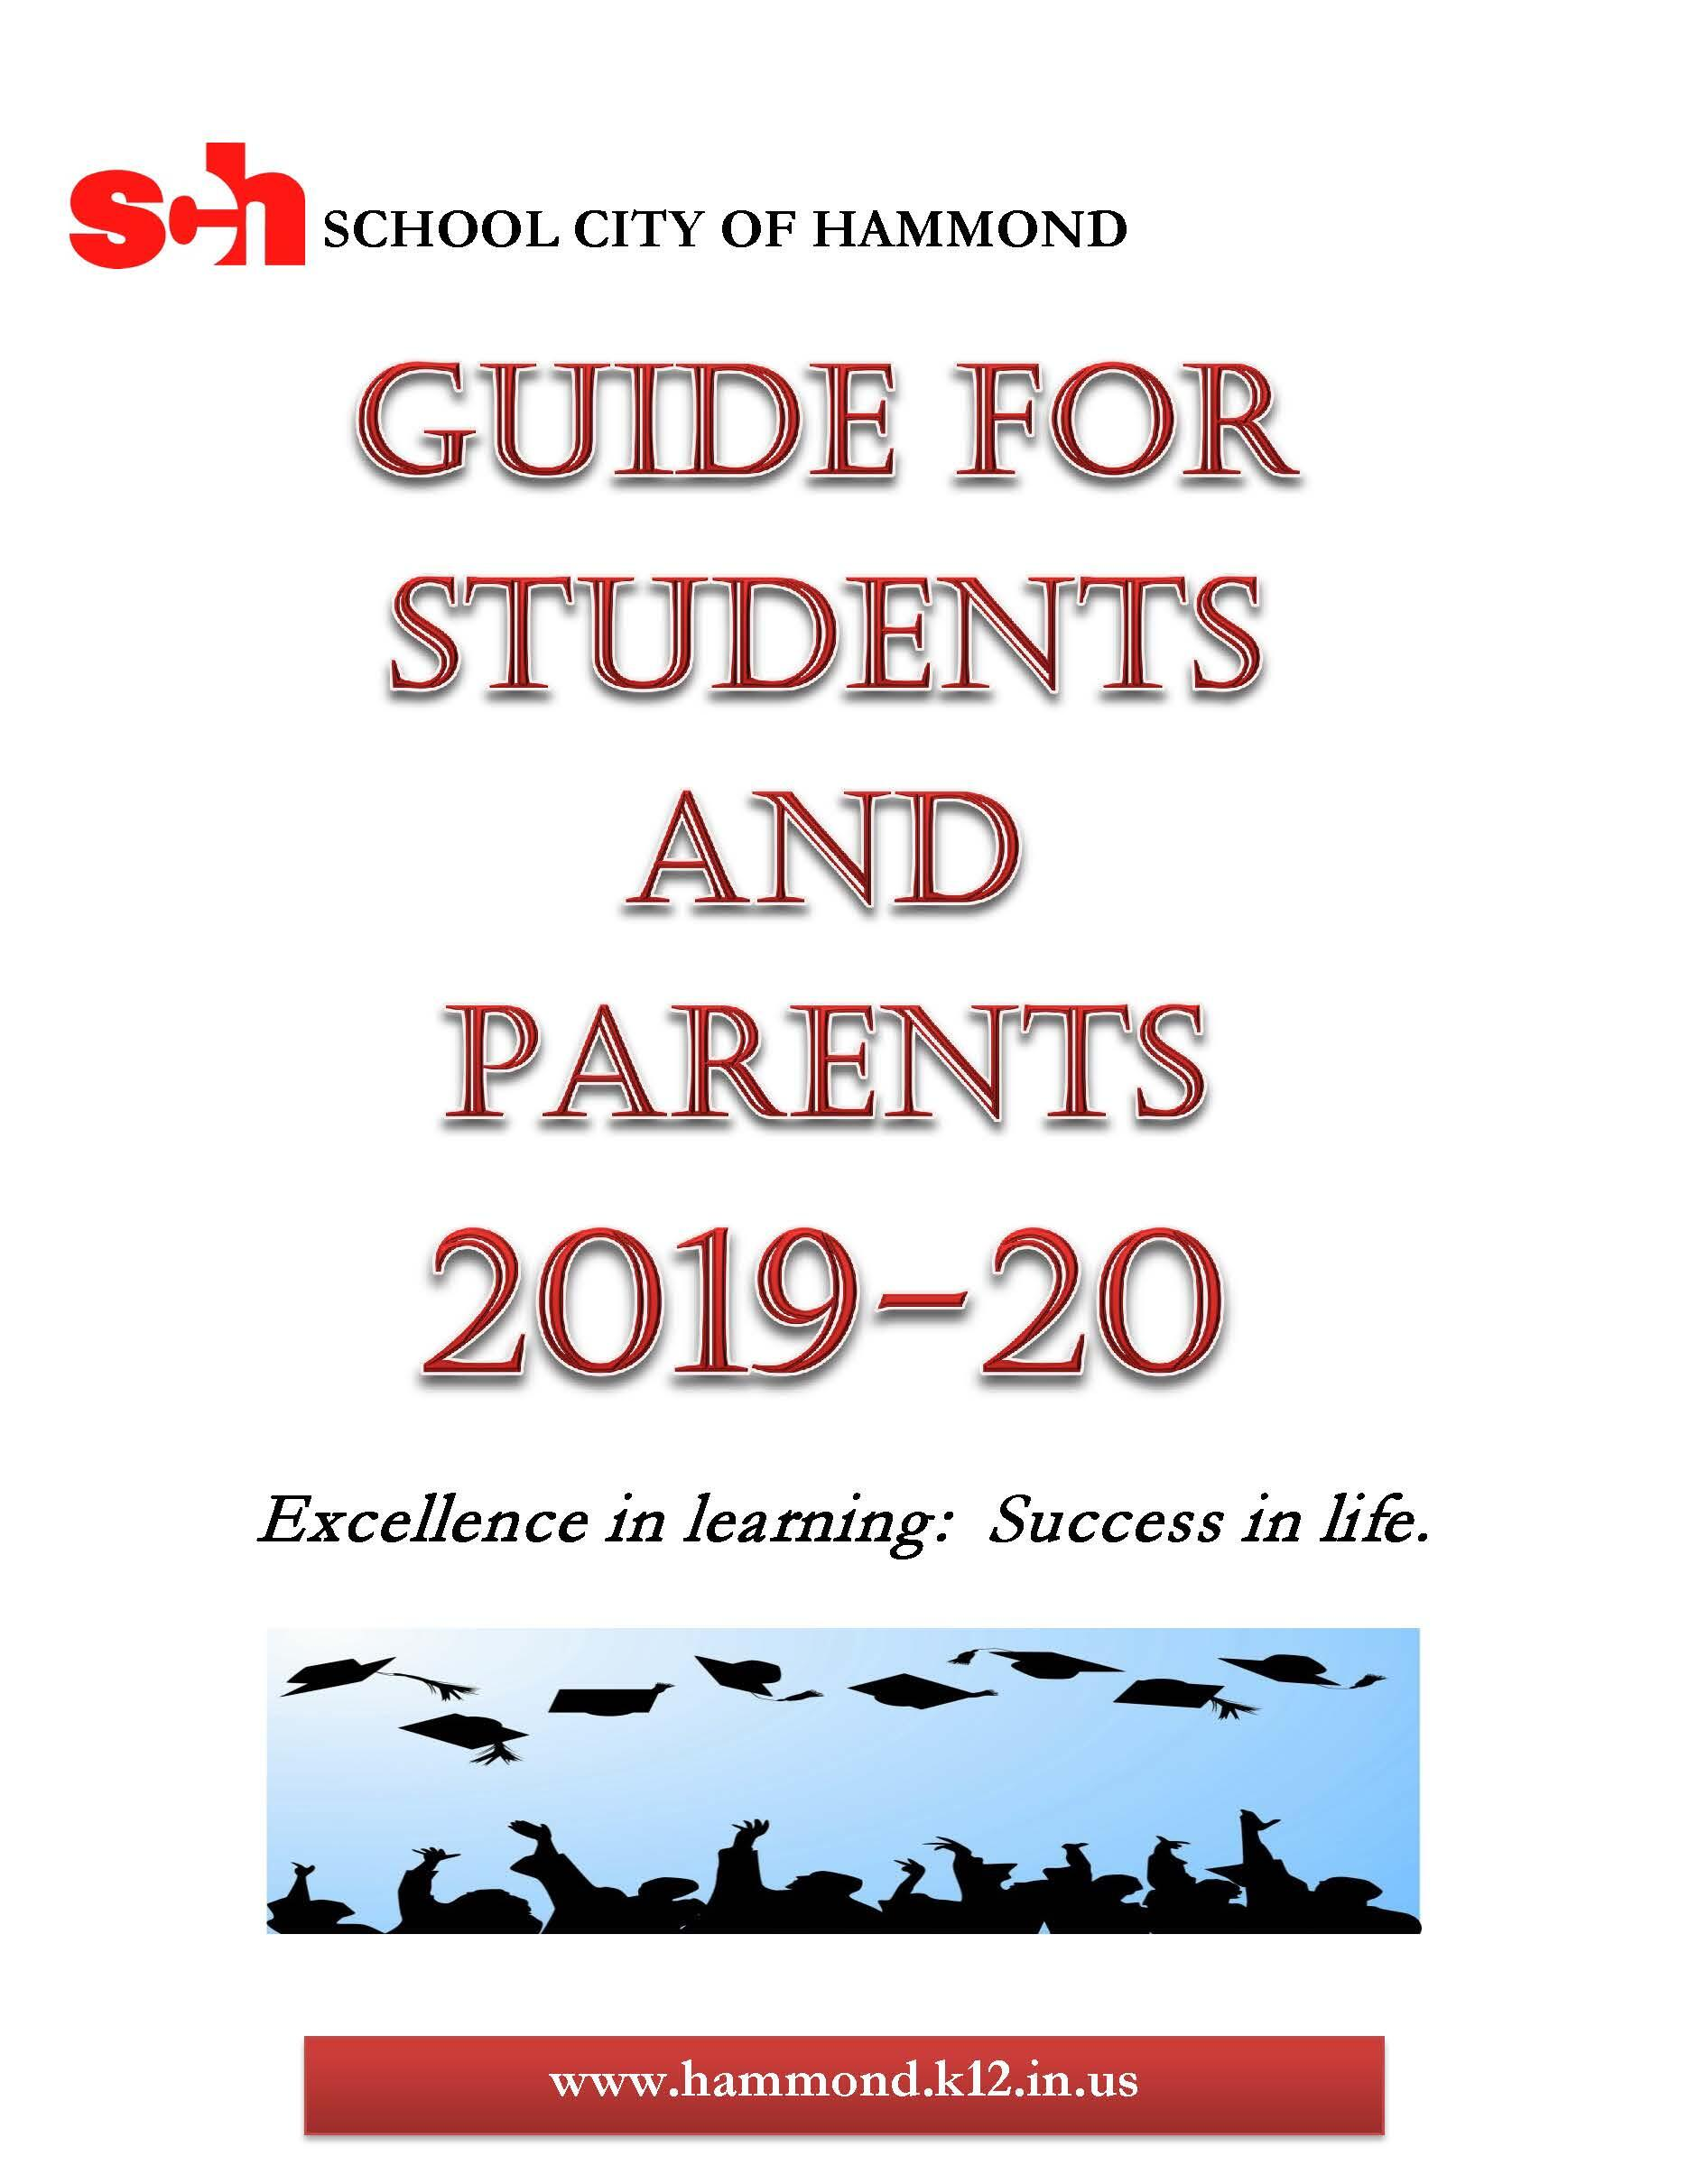 Guide For Students and Parents 2019-2020 - English